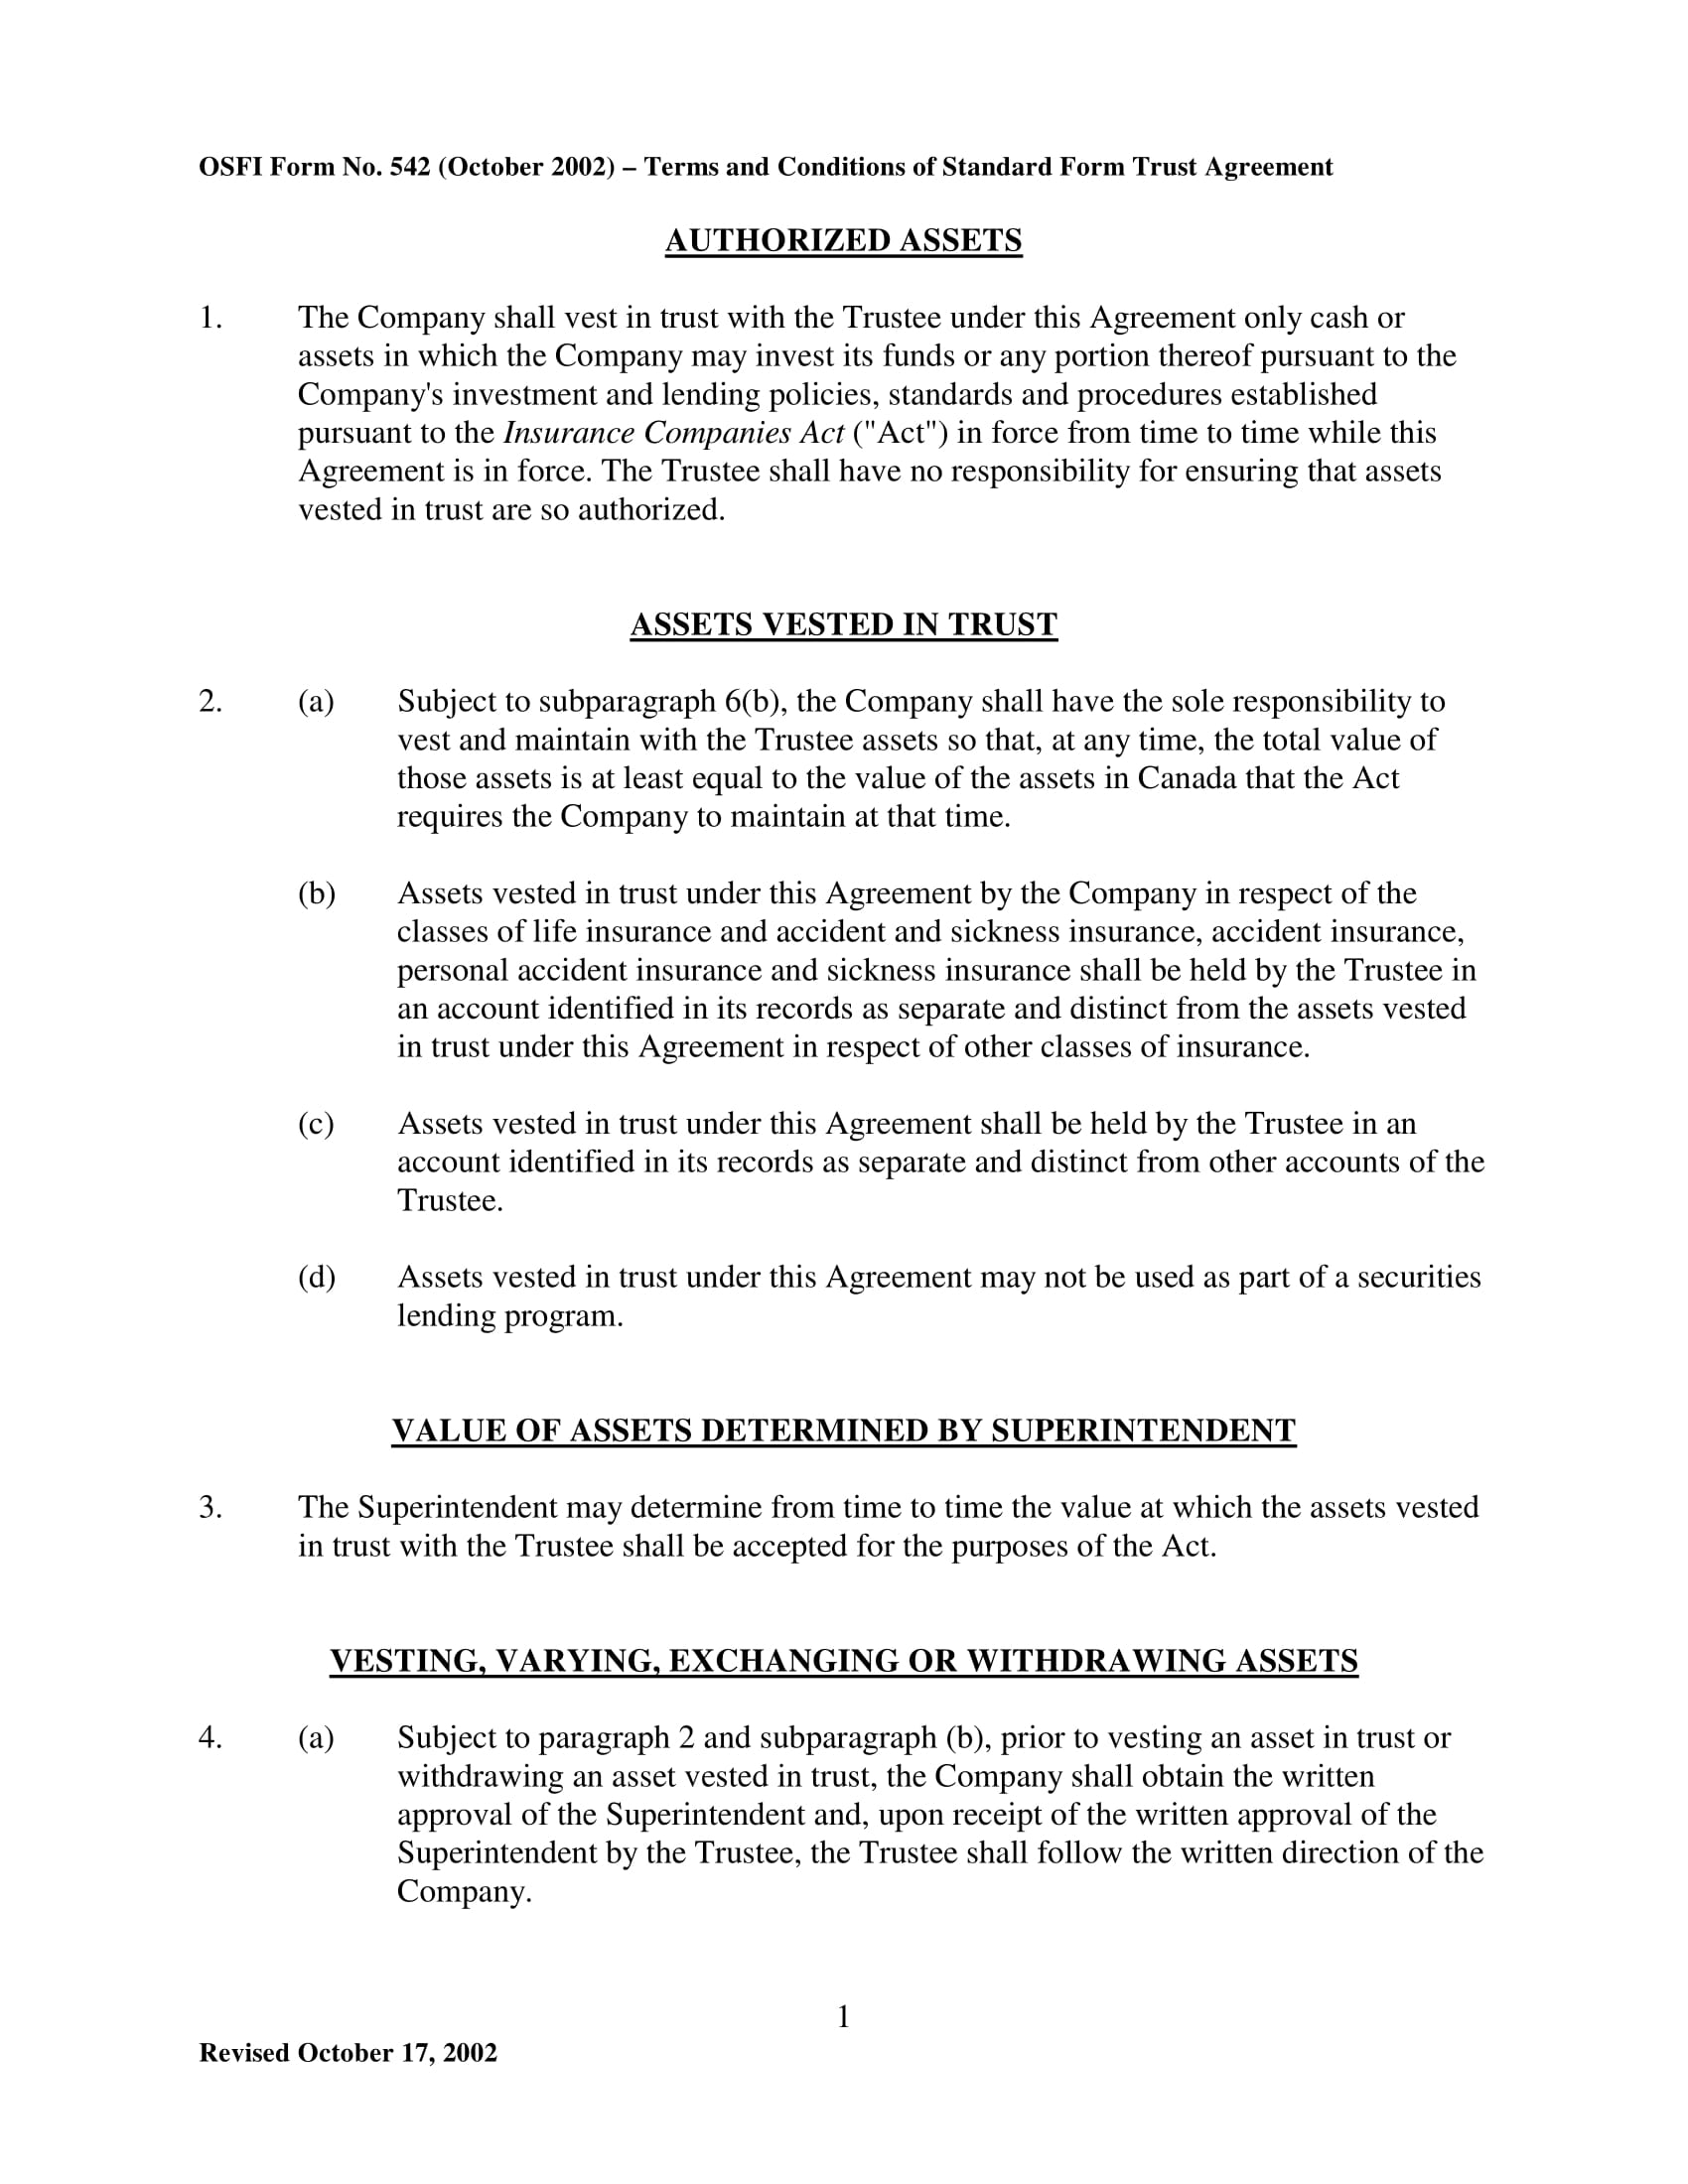 trust agreement sample form 03